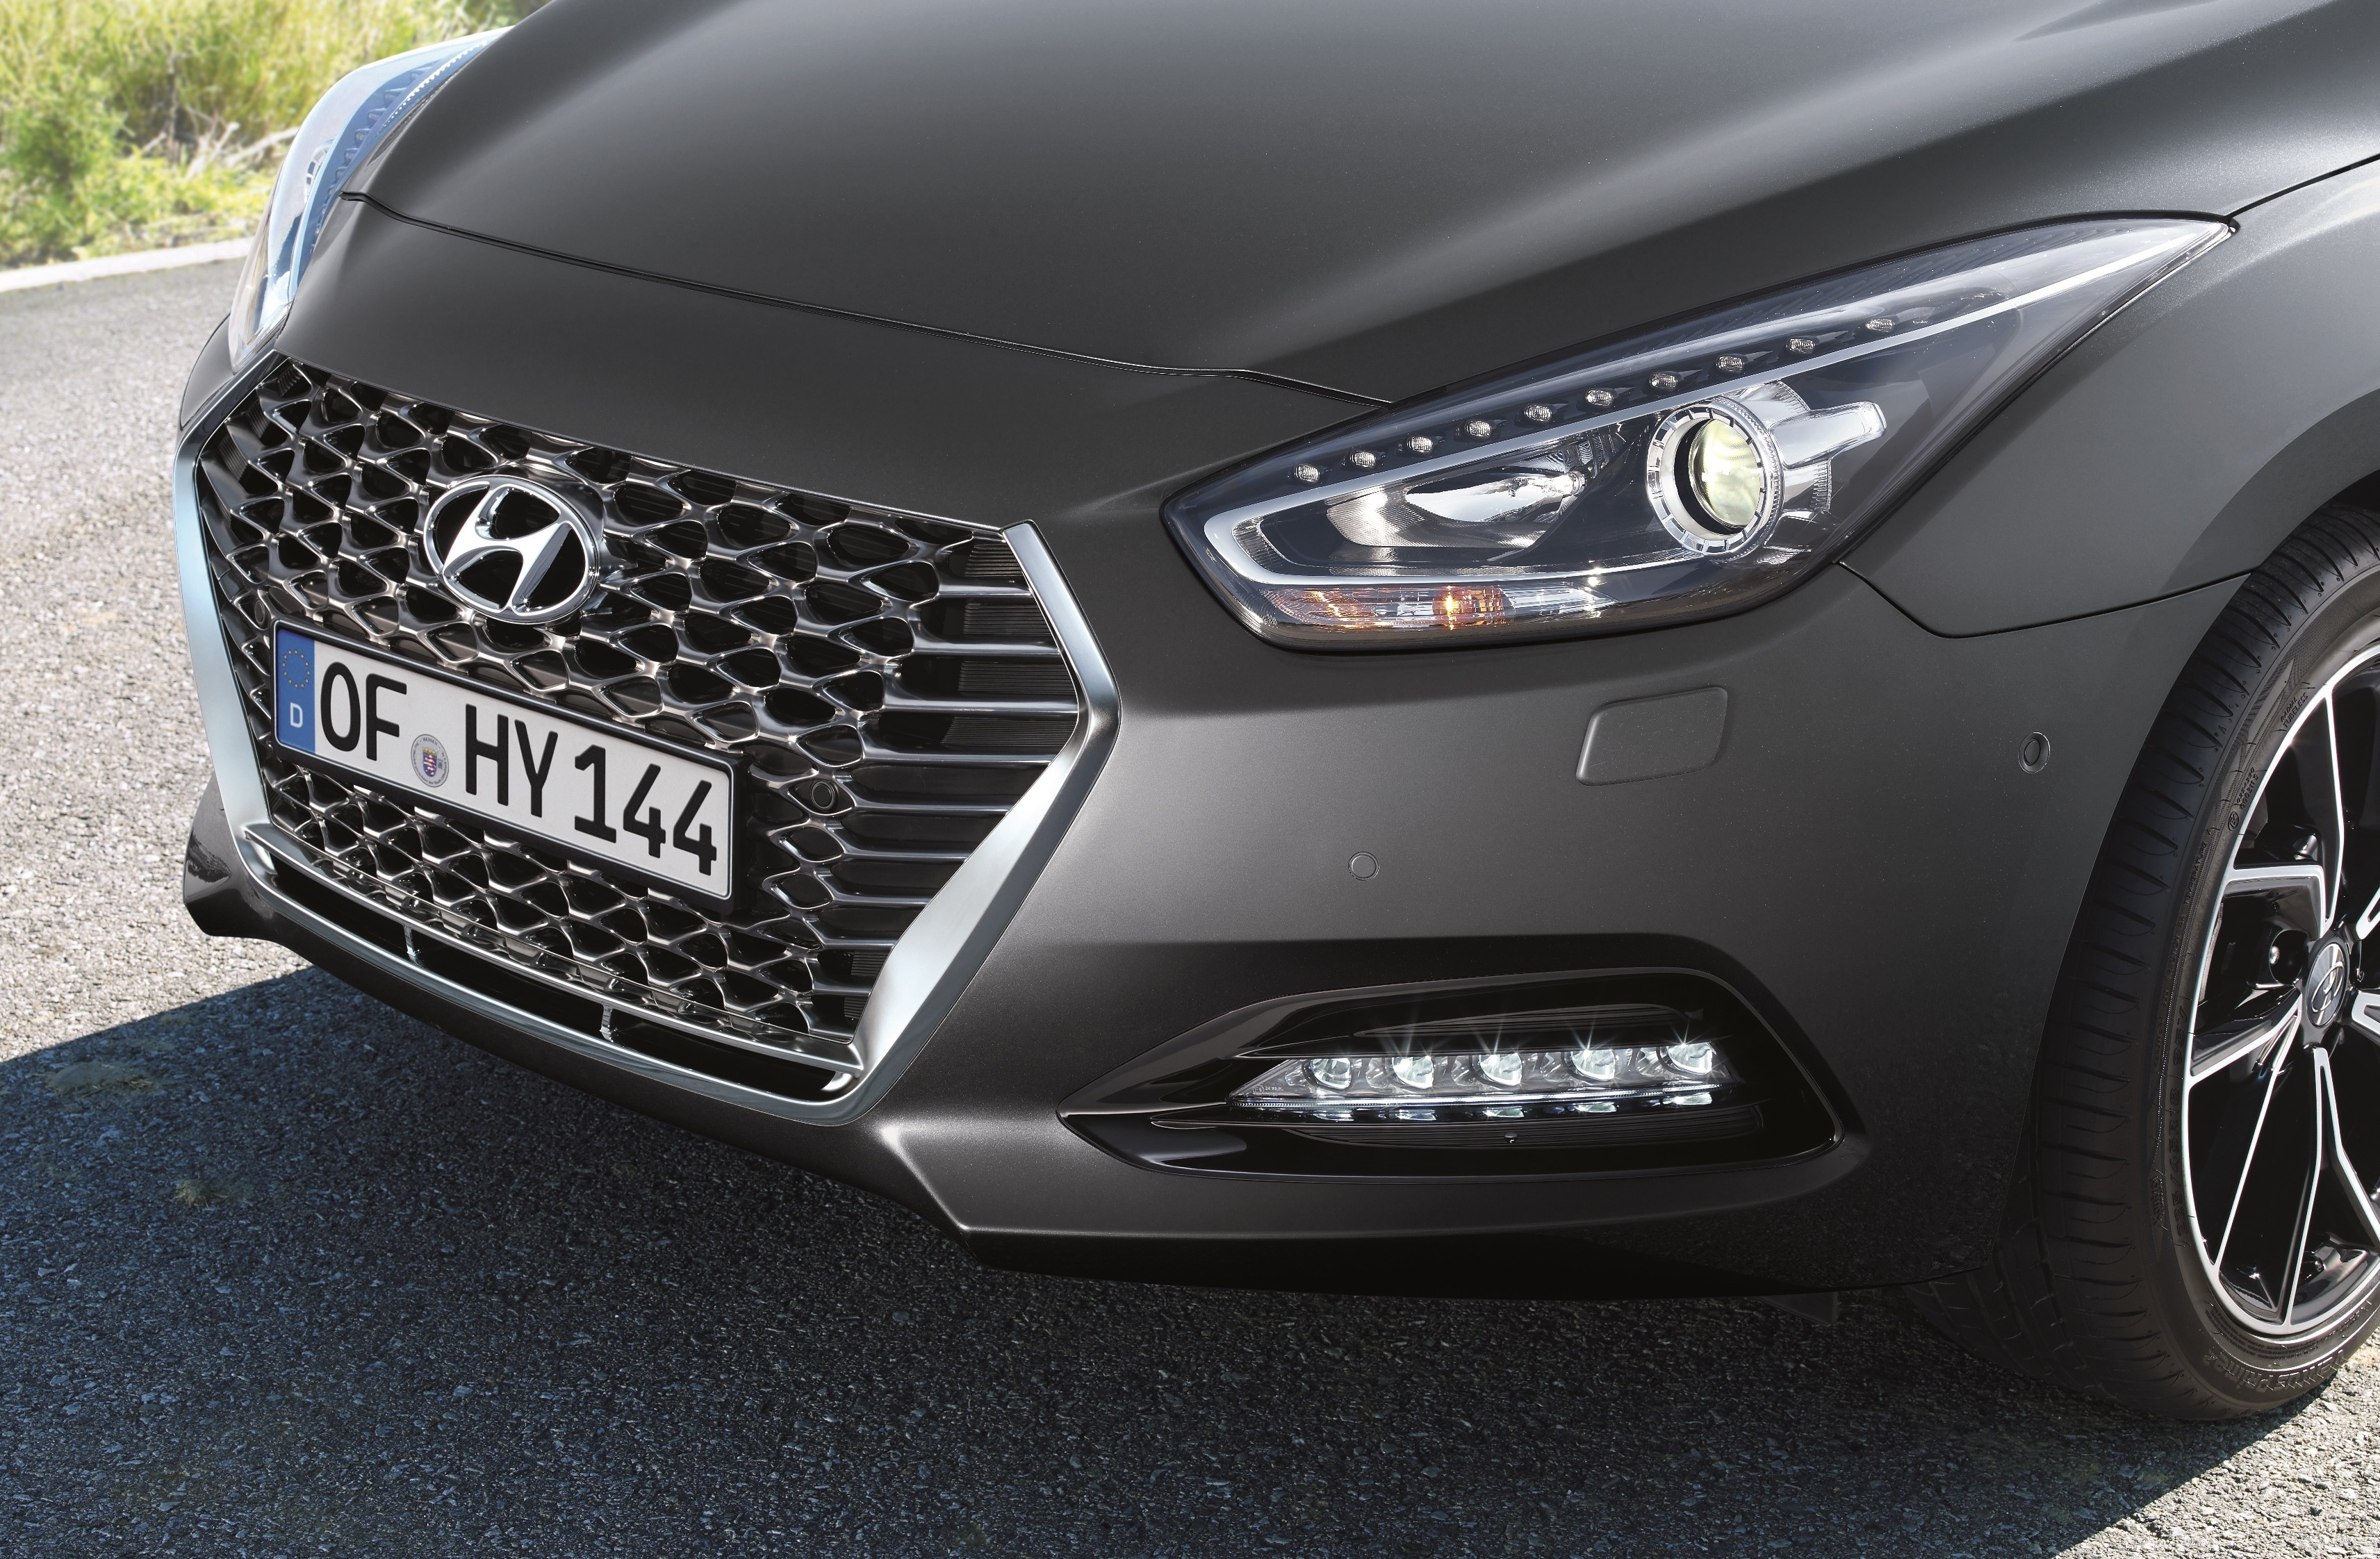 2019 Hyundai i40 Refreshed Inside & Out - autoevolution